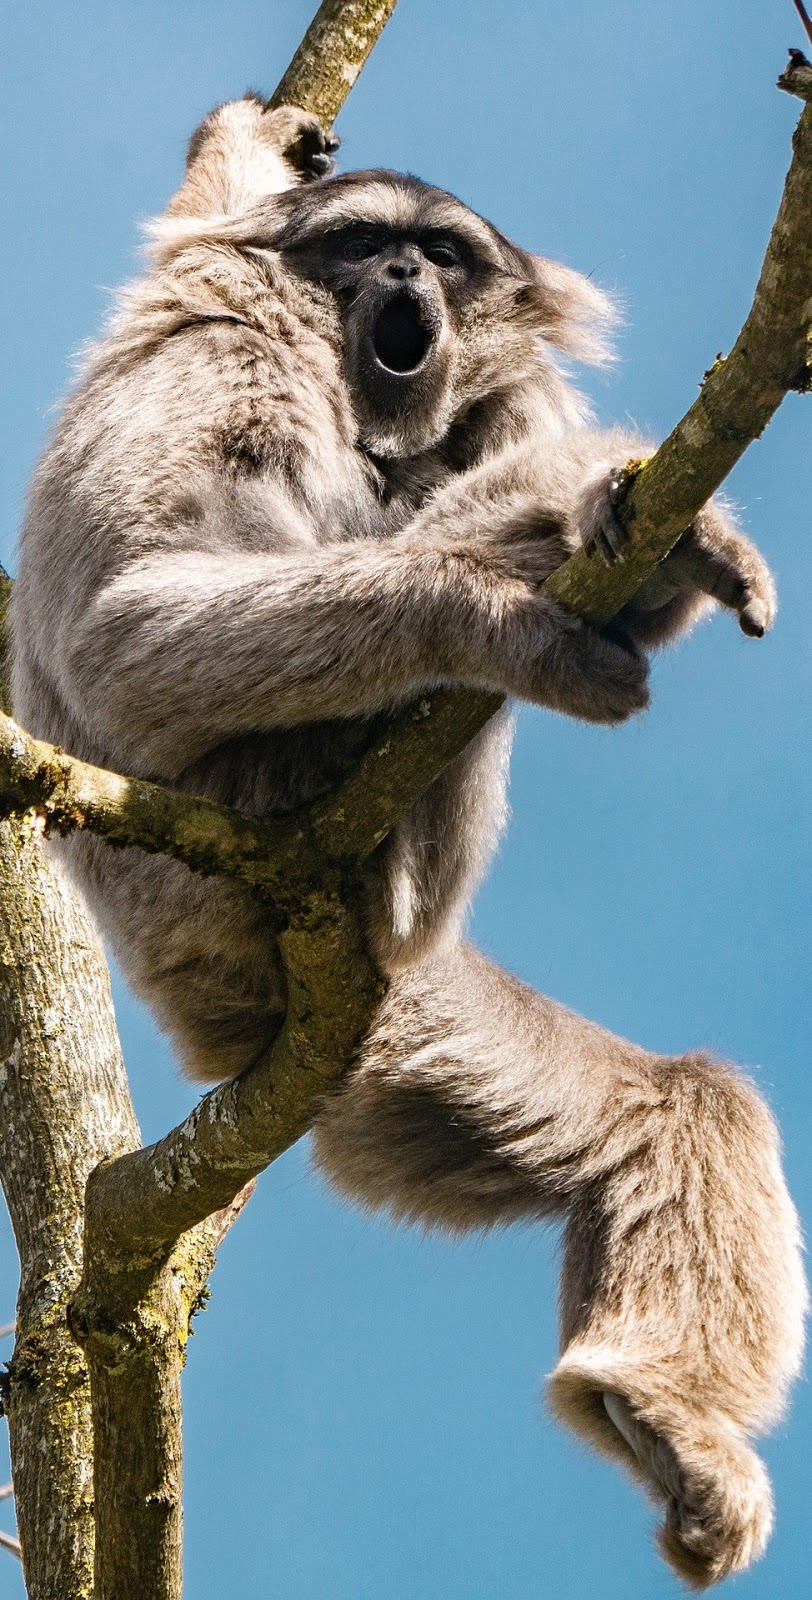 A gibbon on a tree.